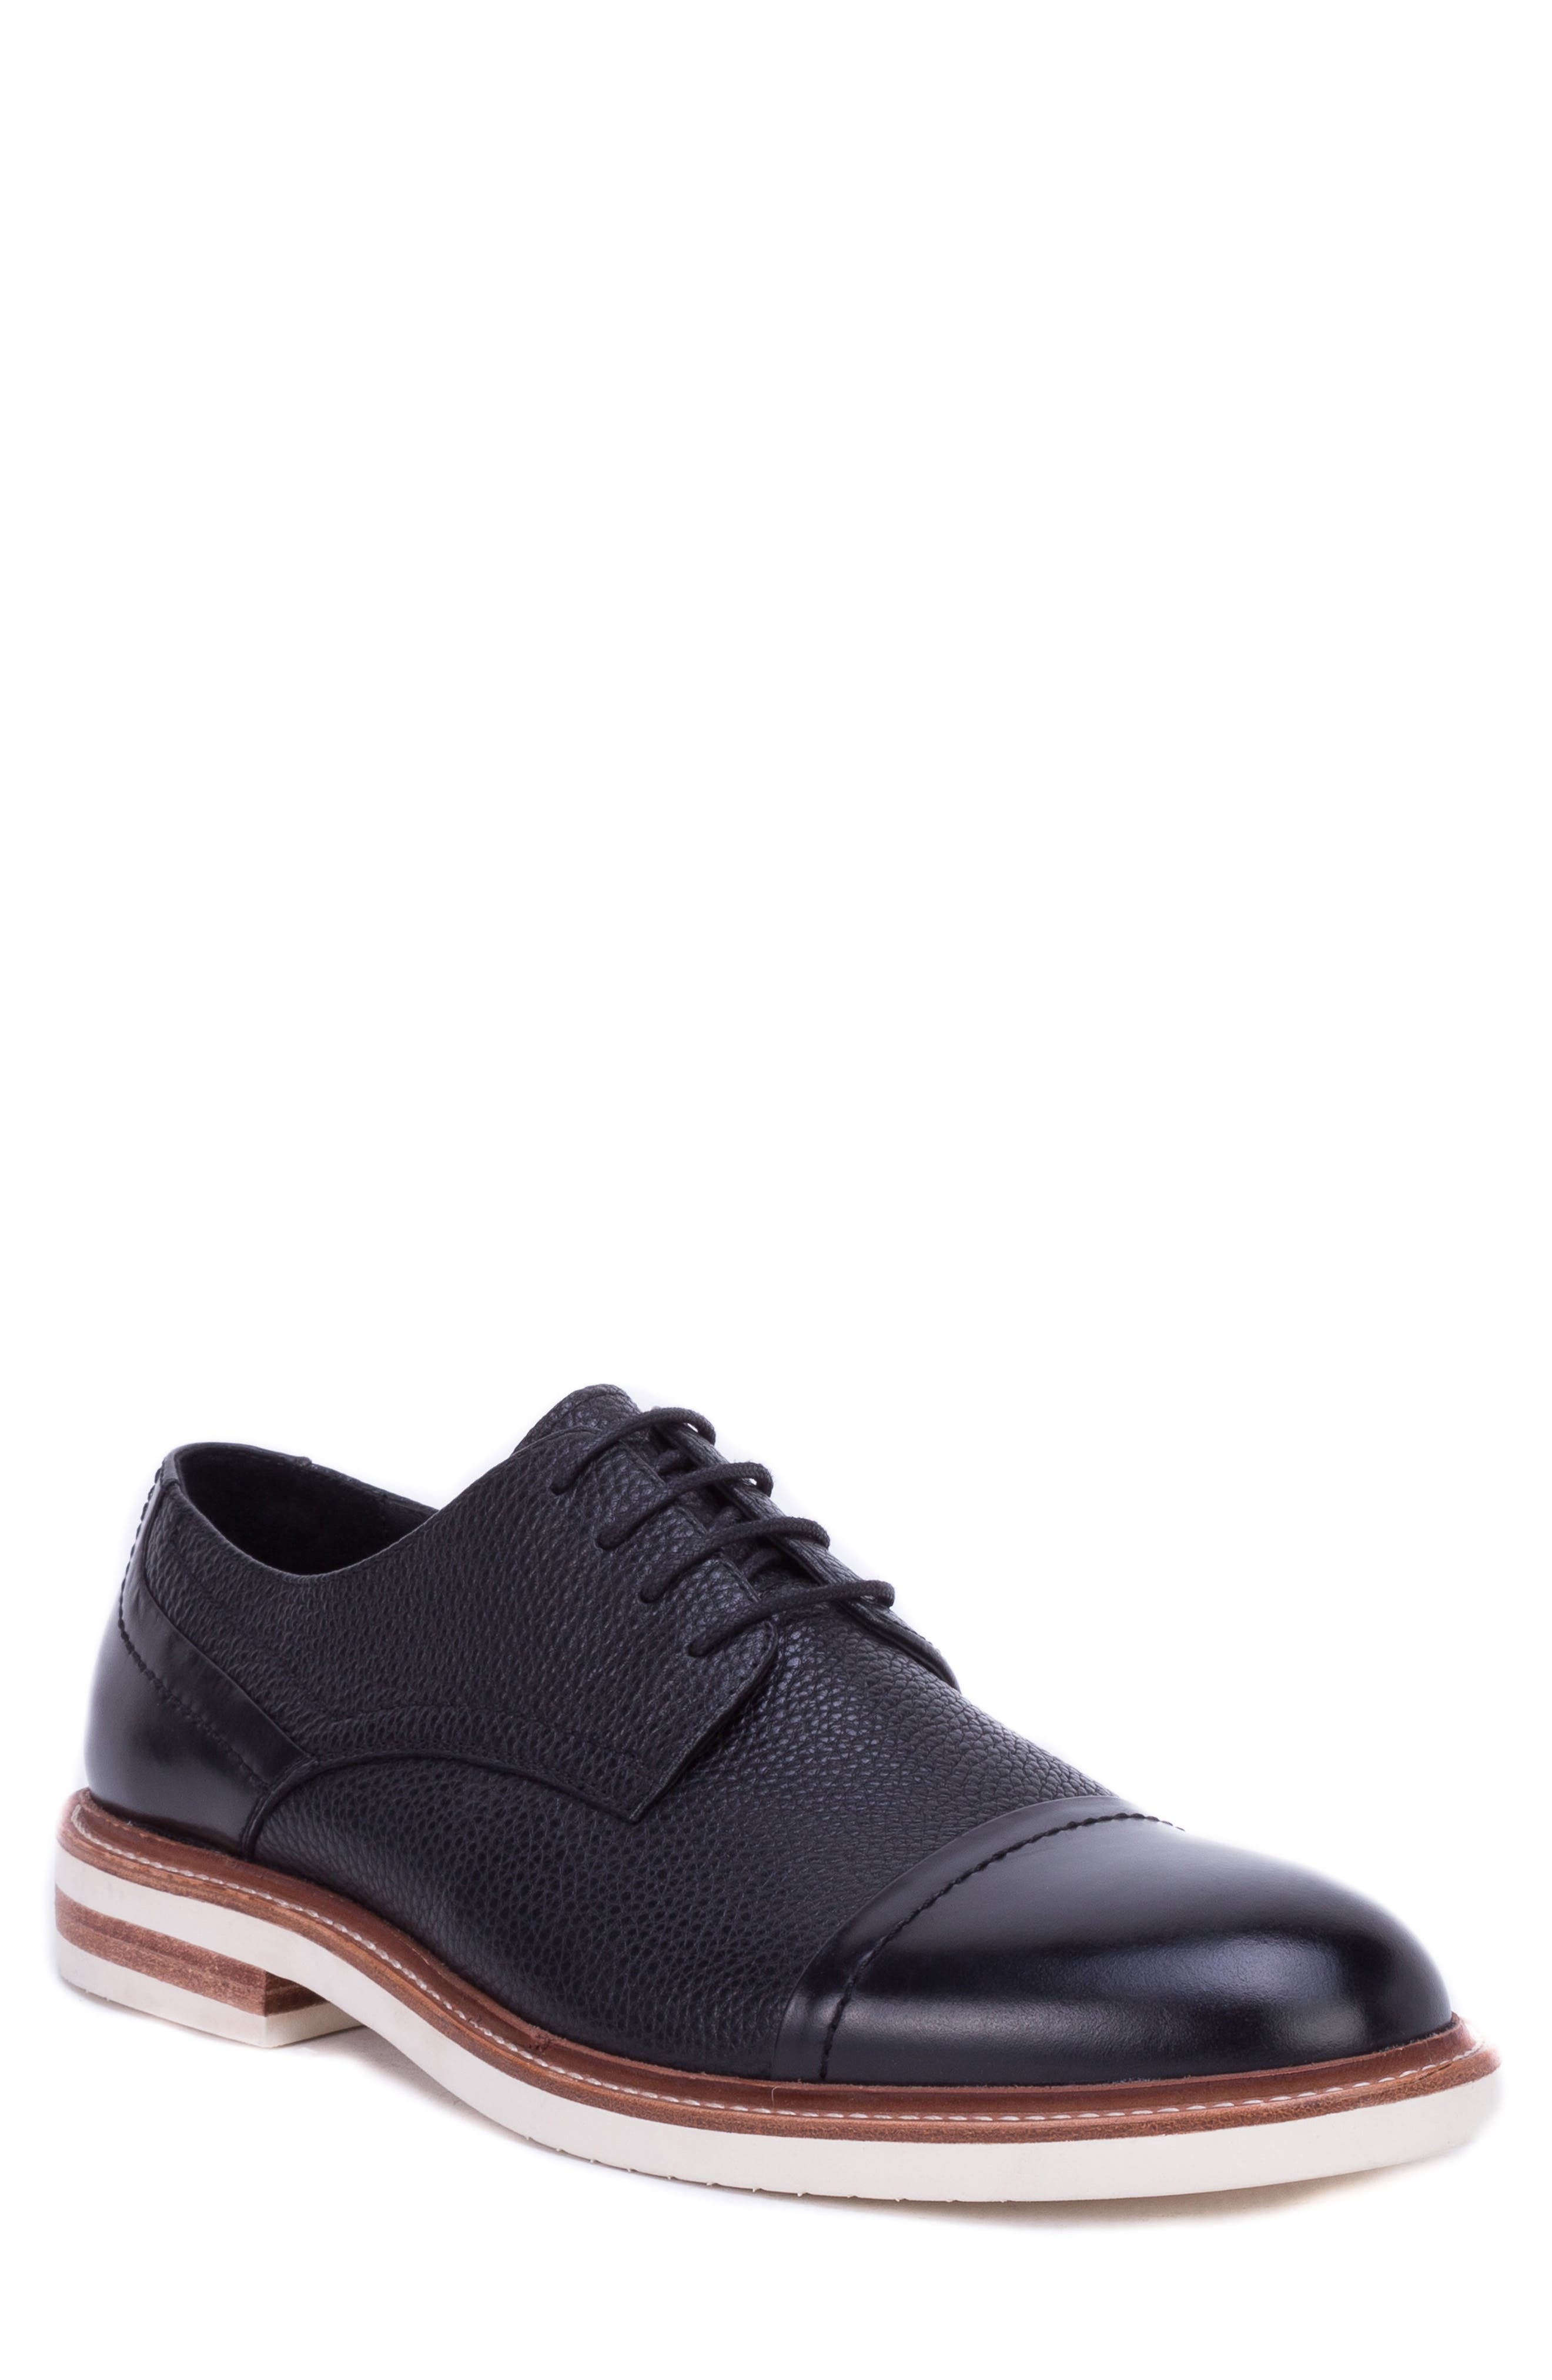 Wensley Cap Toe Derby,                             Main thumbnail 1, color,                             BLACK LEATHER